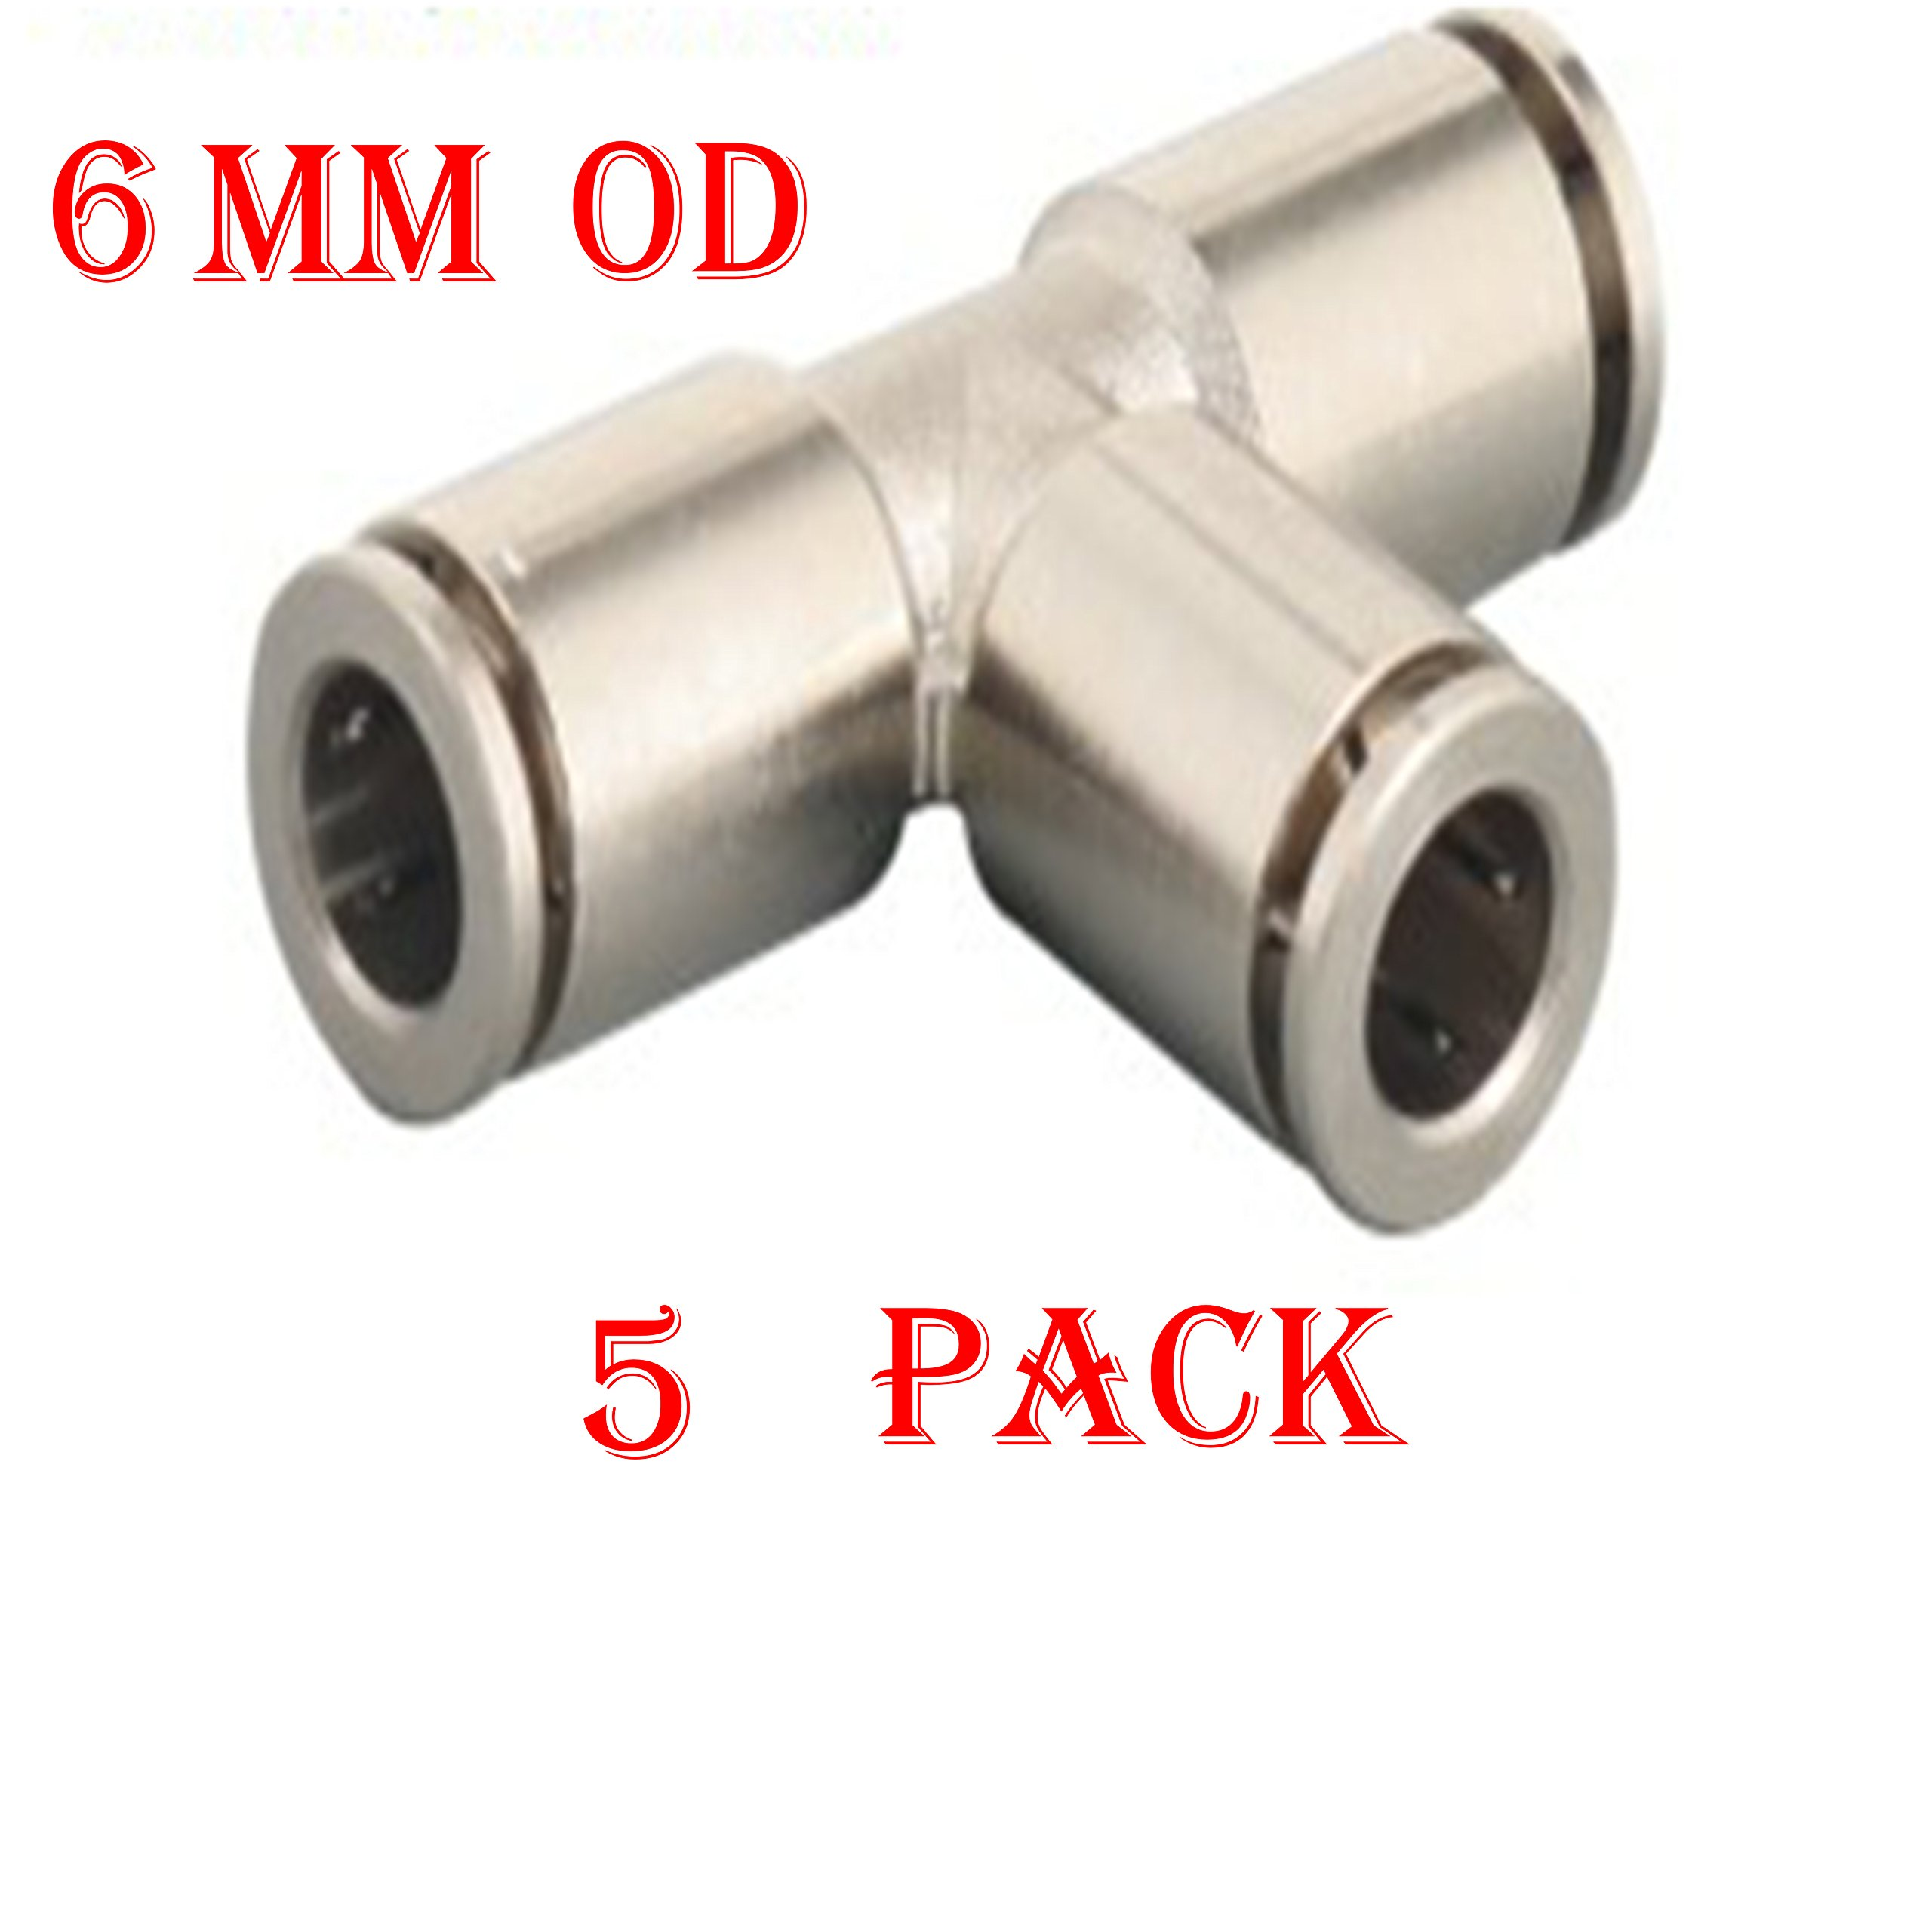 uxcell Push to Connect Tube Fitting Male Elbow 6mm Tube OD X 1//4 NPT Thread Pneumatic Air Push Fit Lock Fitting 4pcs